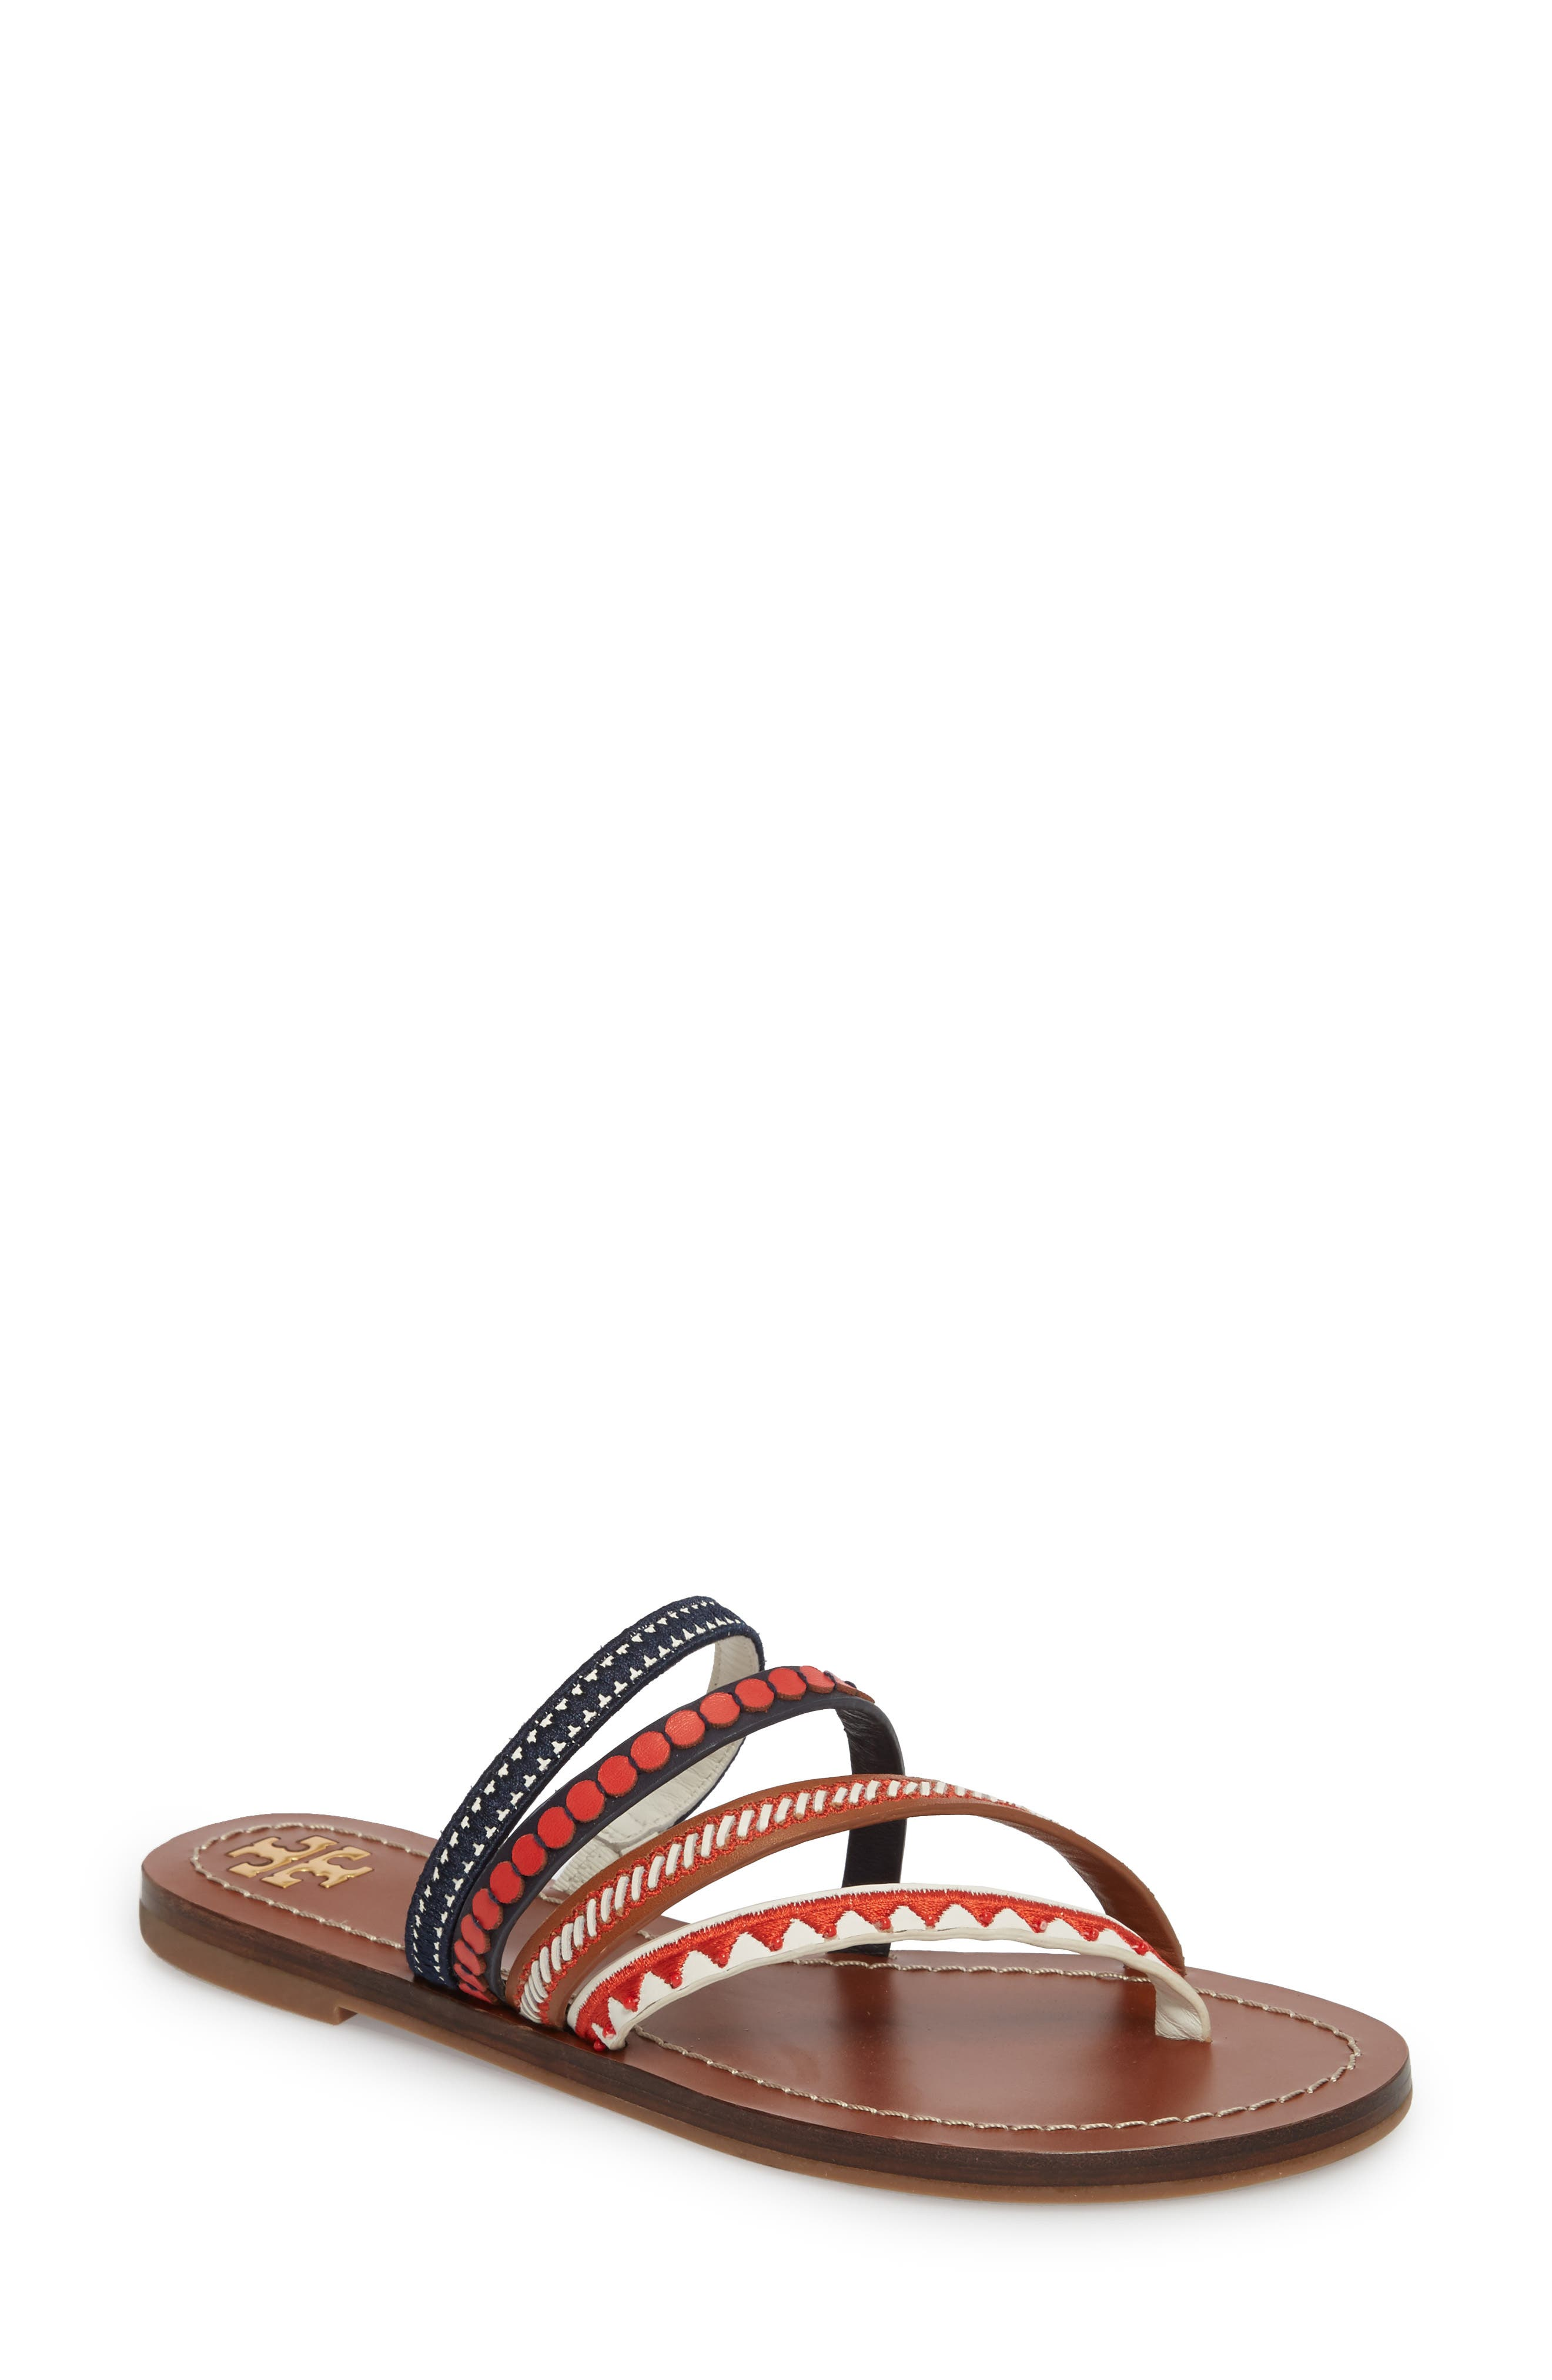 Patos Embroidered Thong Sandal,                             Main thumbnail 1, color,                             PERFECT CUOIO/ MULTI MUTLI